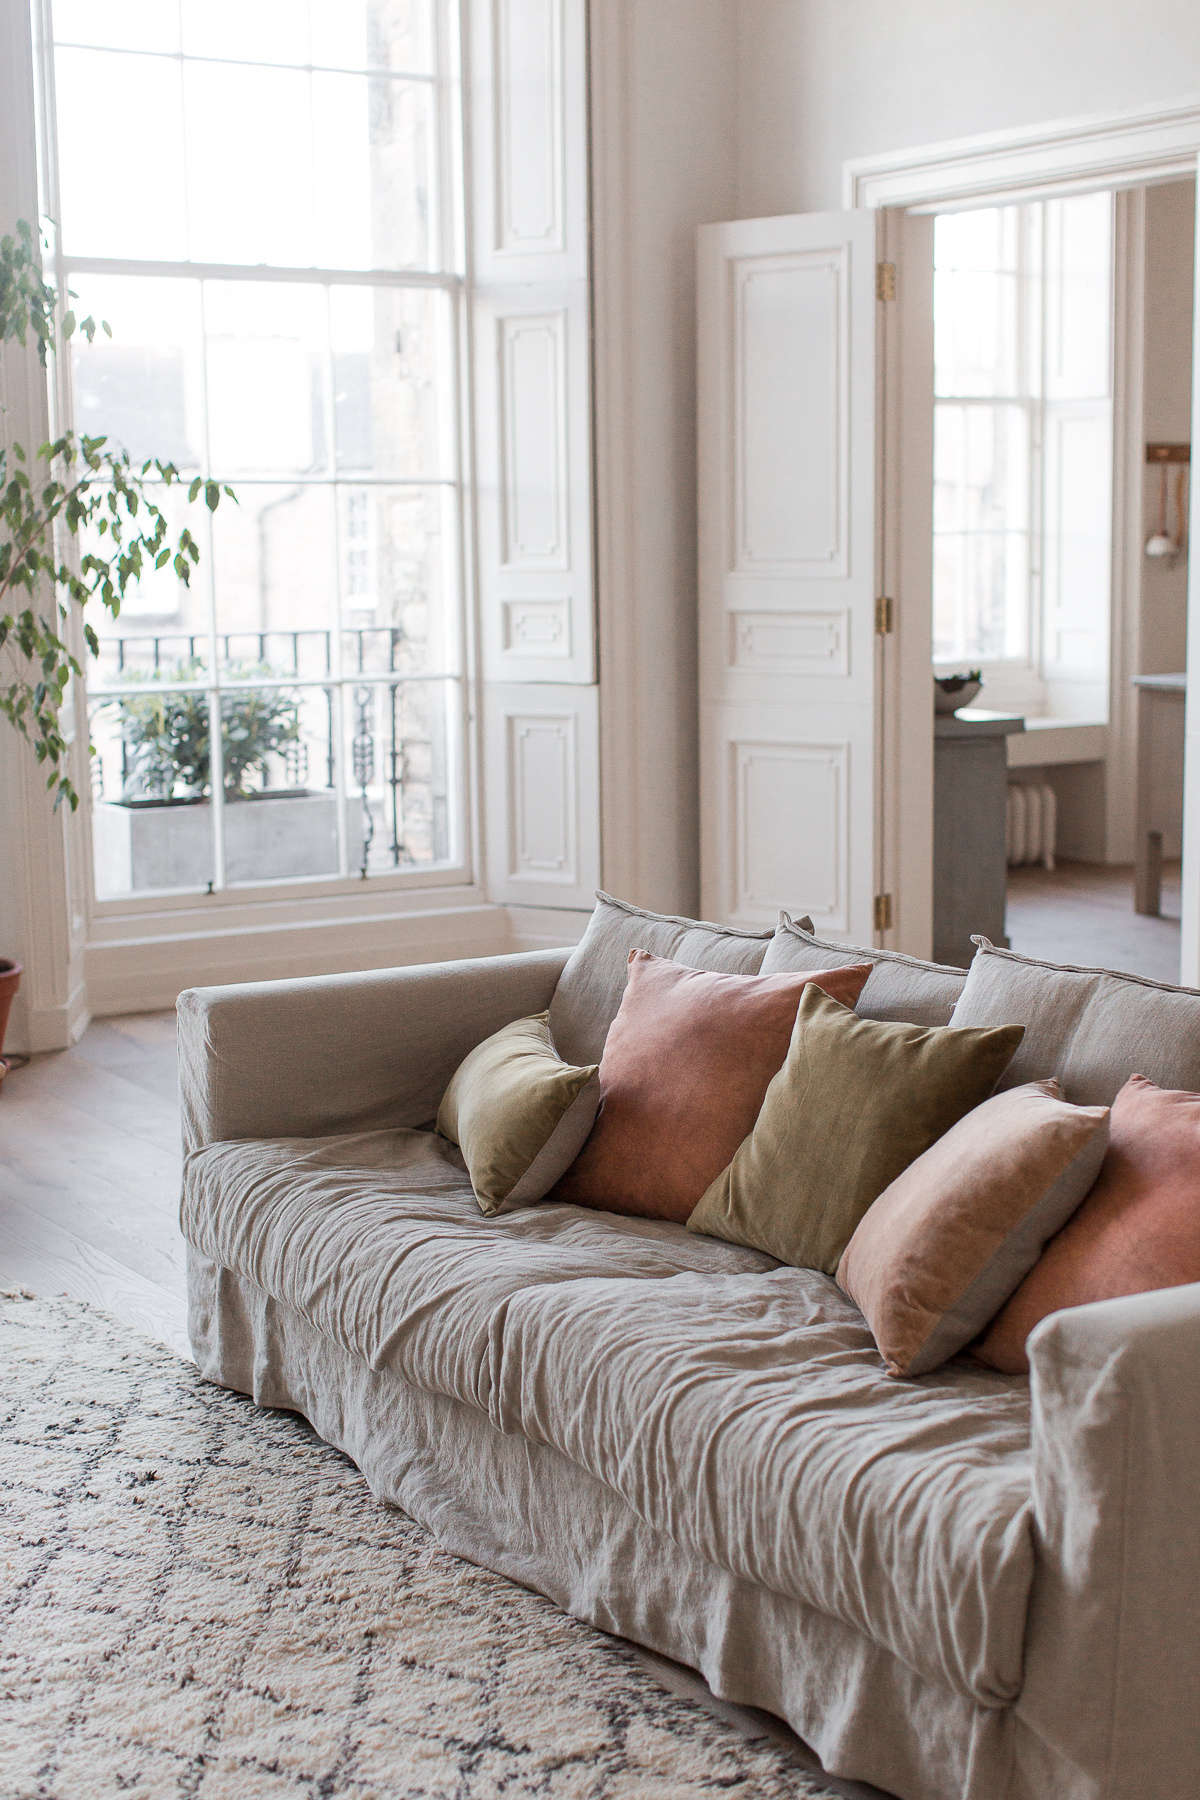 During the several months Nina and Craig were awaiting building permits, they lived in the apartment with just a sofa and a mattress on the floor. Decotique&#8